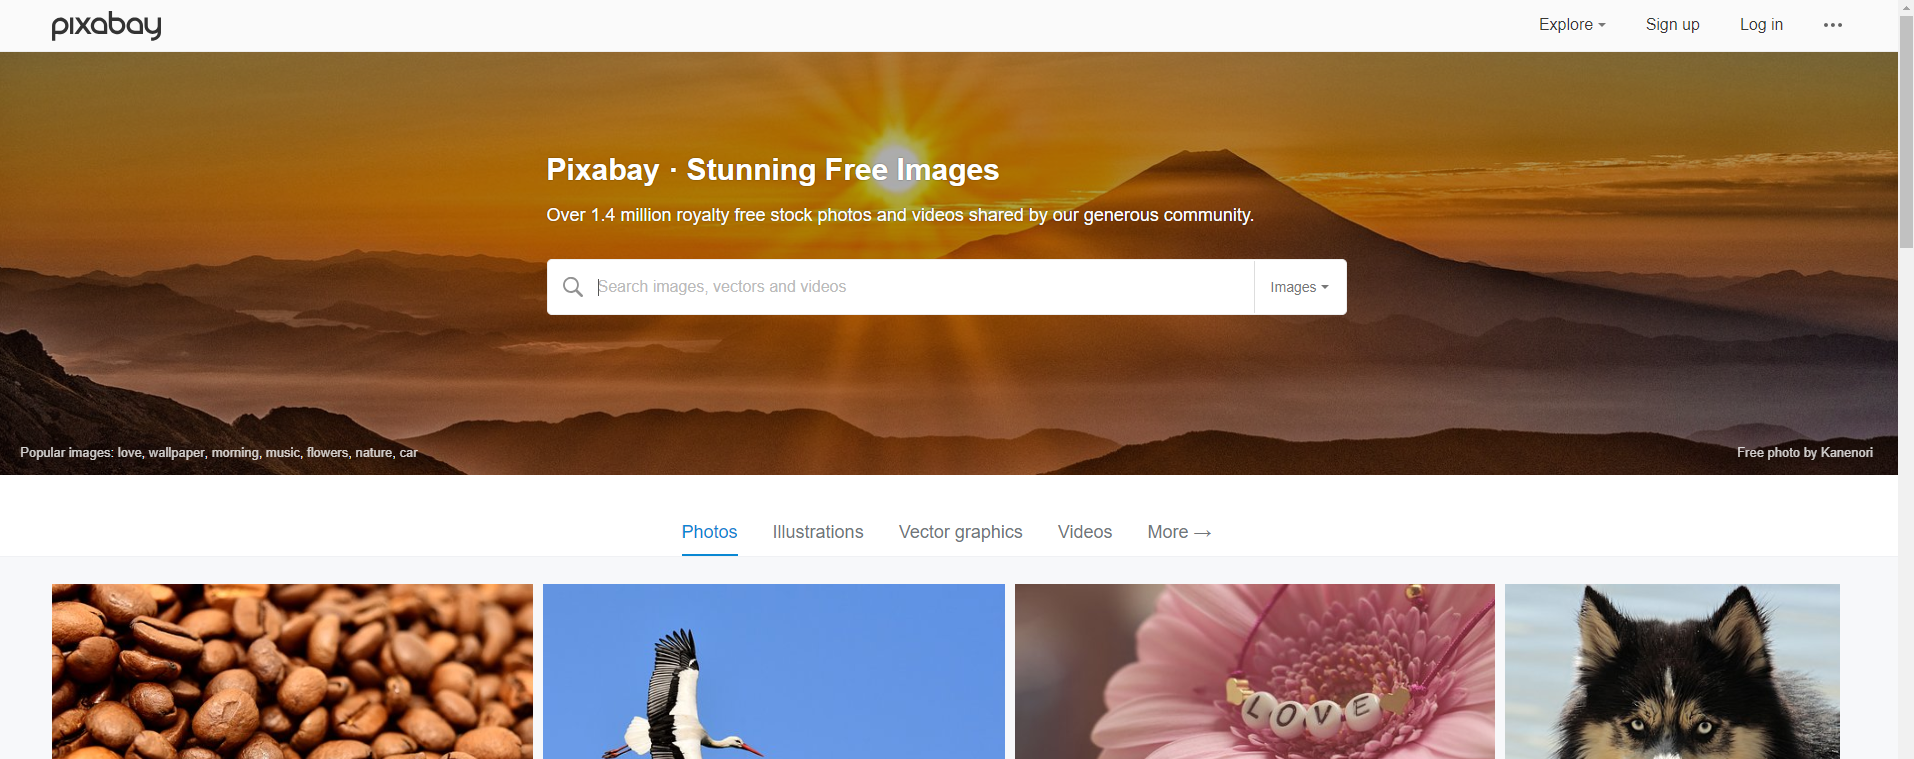 use Pixabay or pexels for images in your blog posts